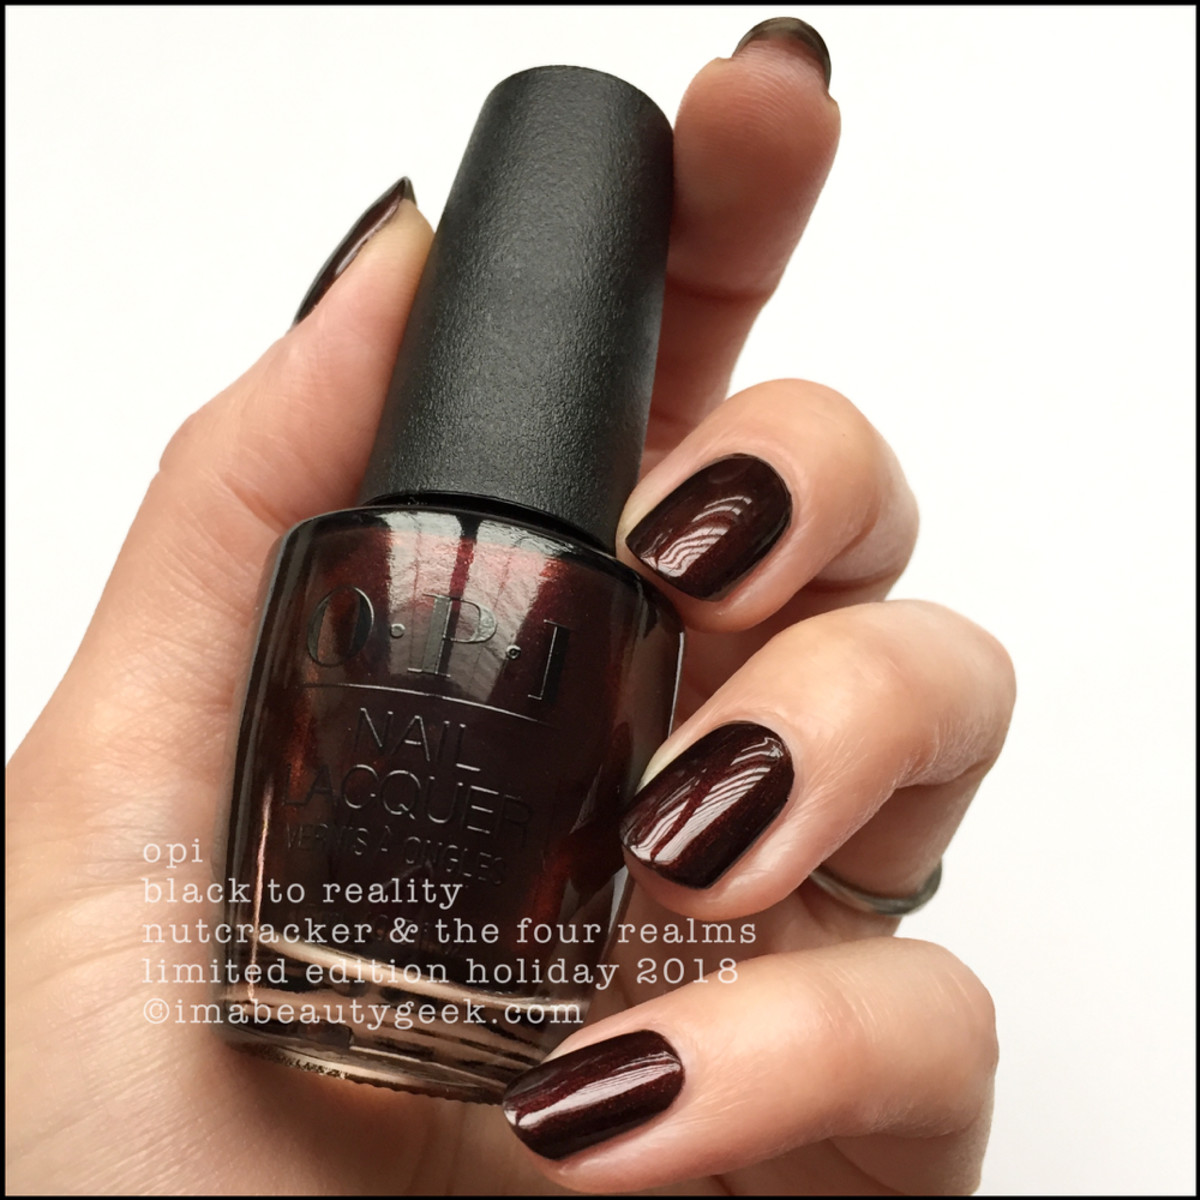 OPI Black to Reality - OPI Nutcracker Holiday 2018